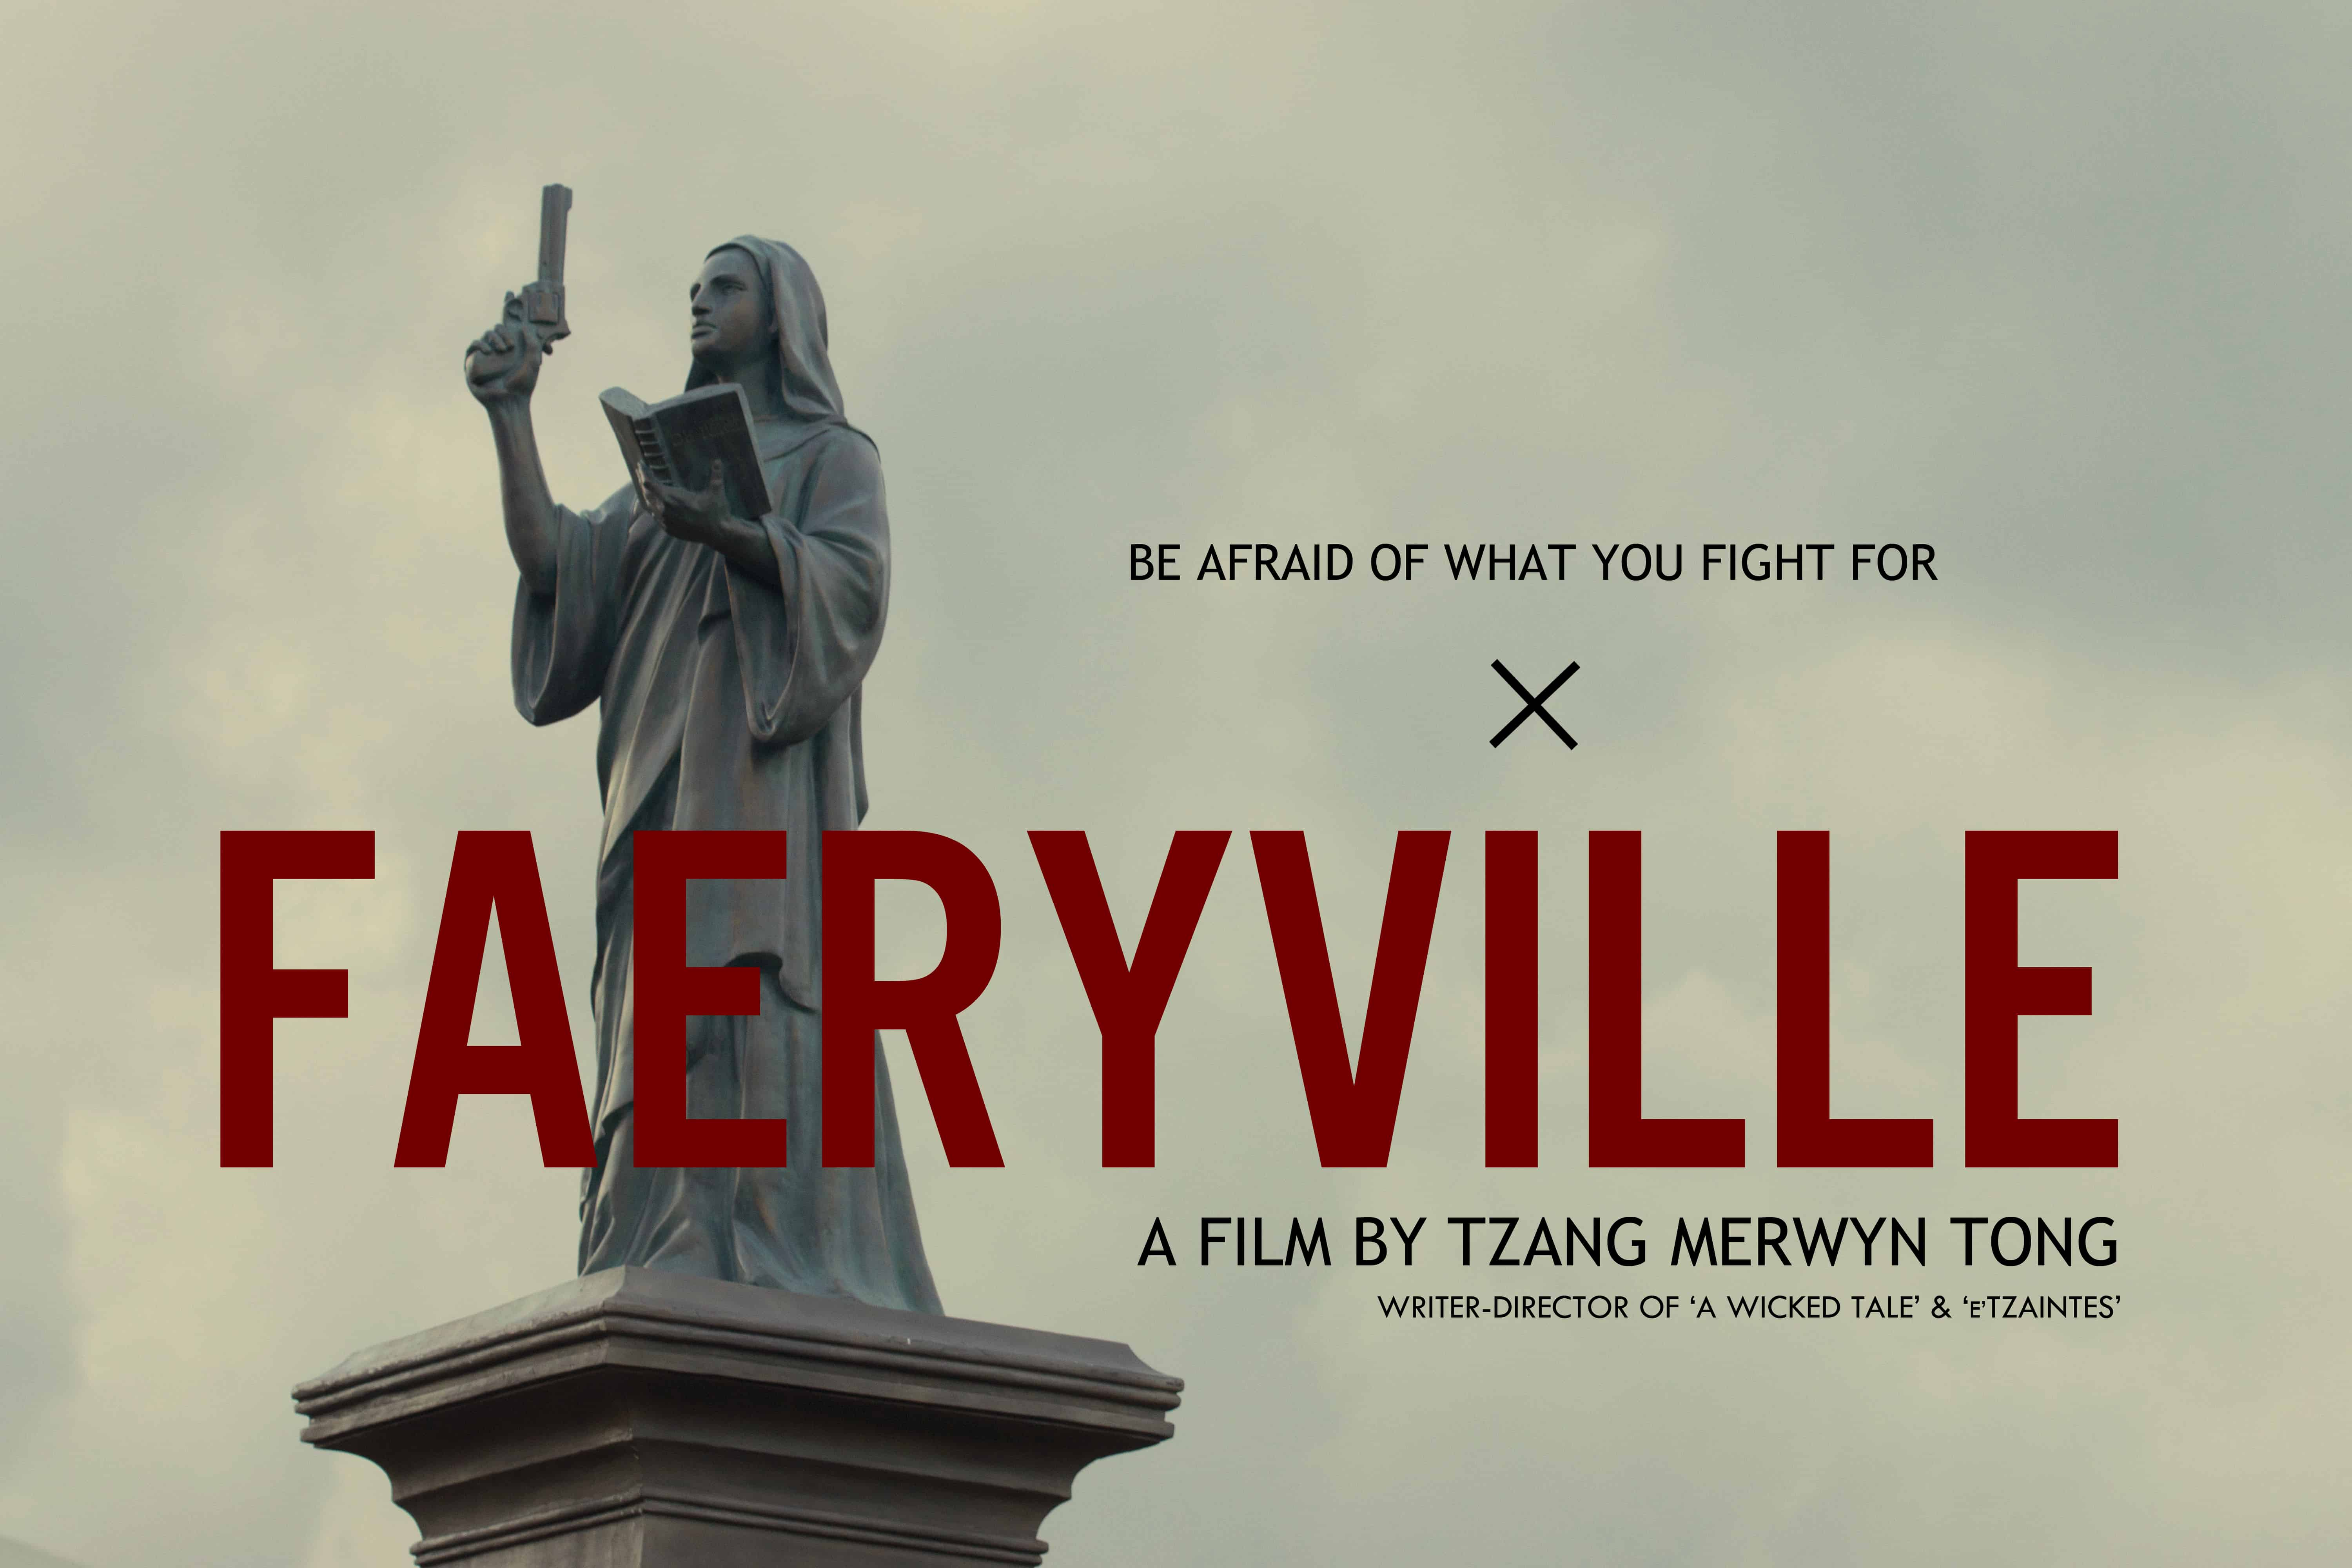 F*** and Singaporean film-maker's 'Faeryville' headed for Hollywood